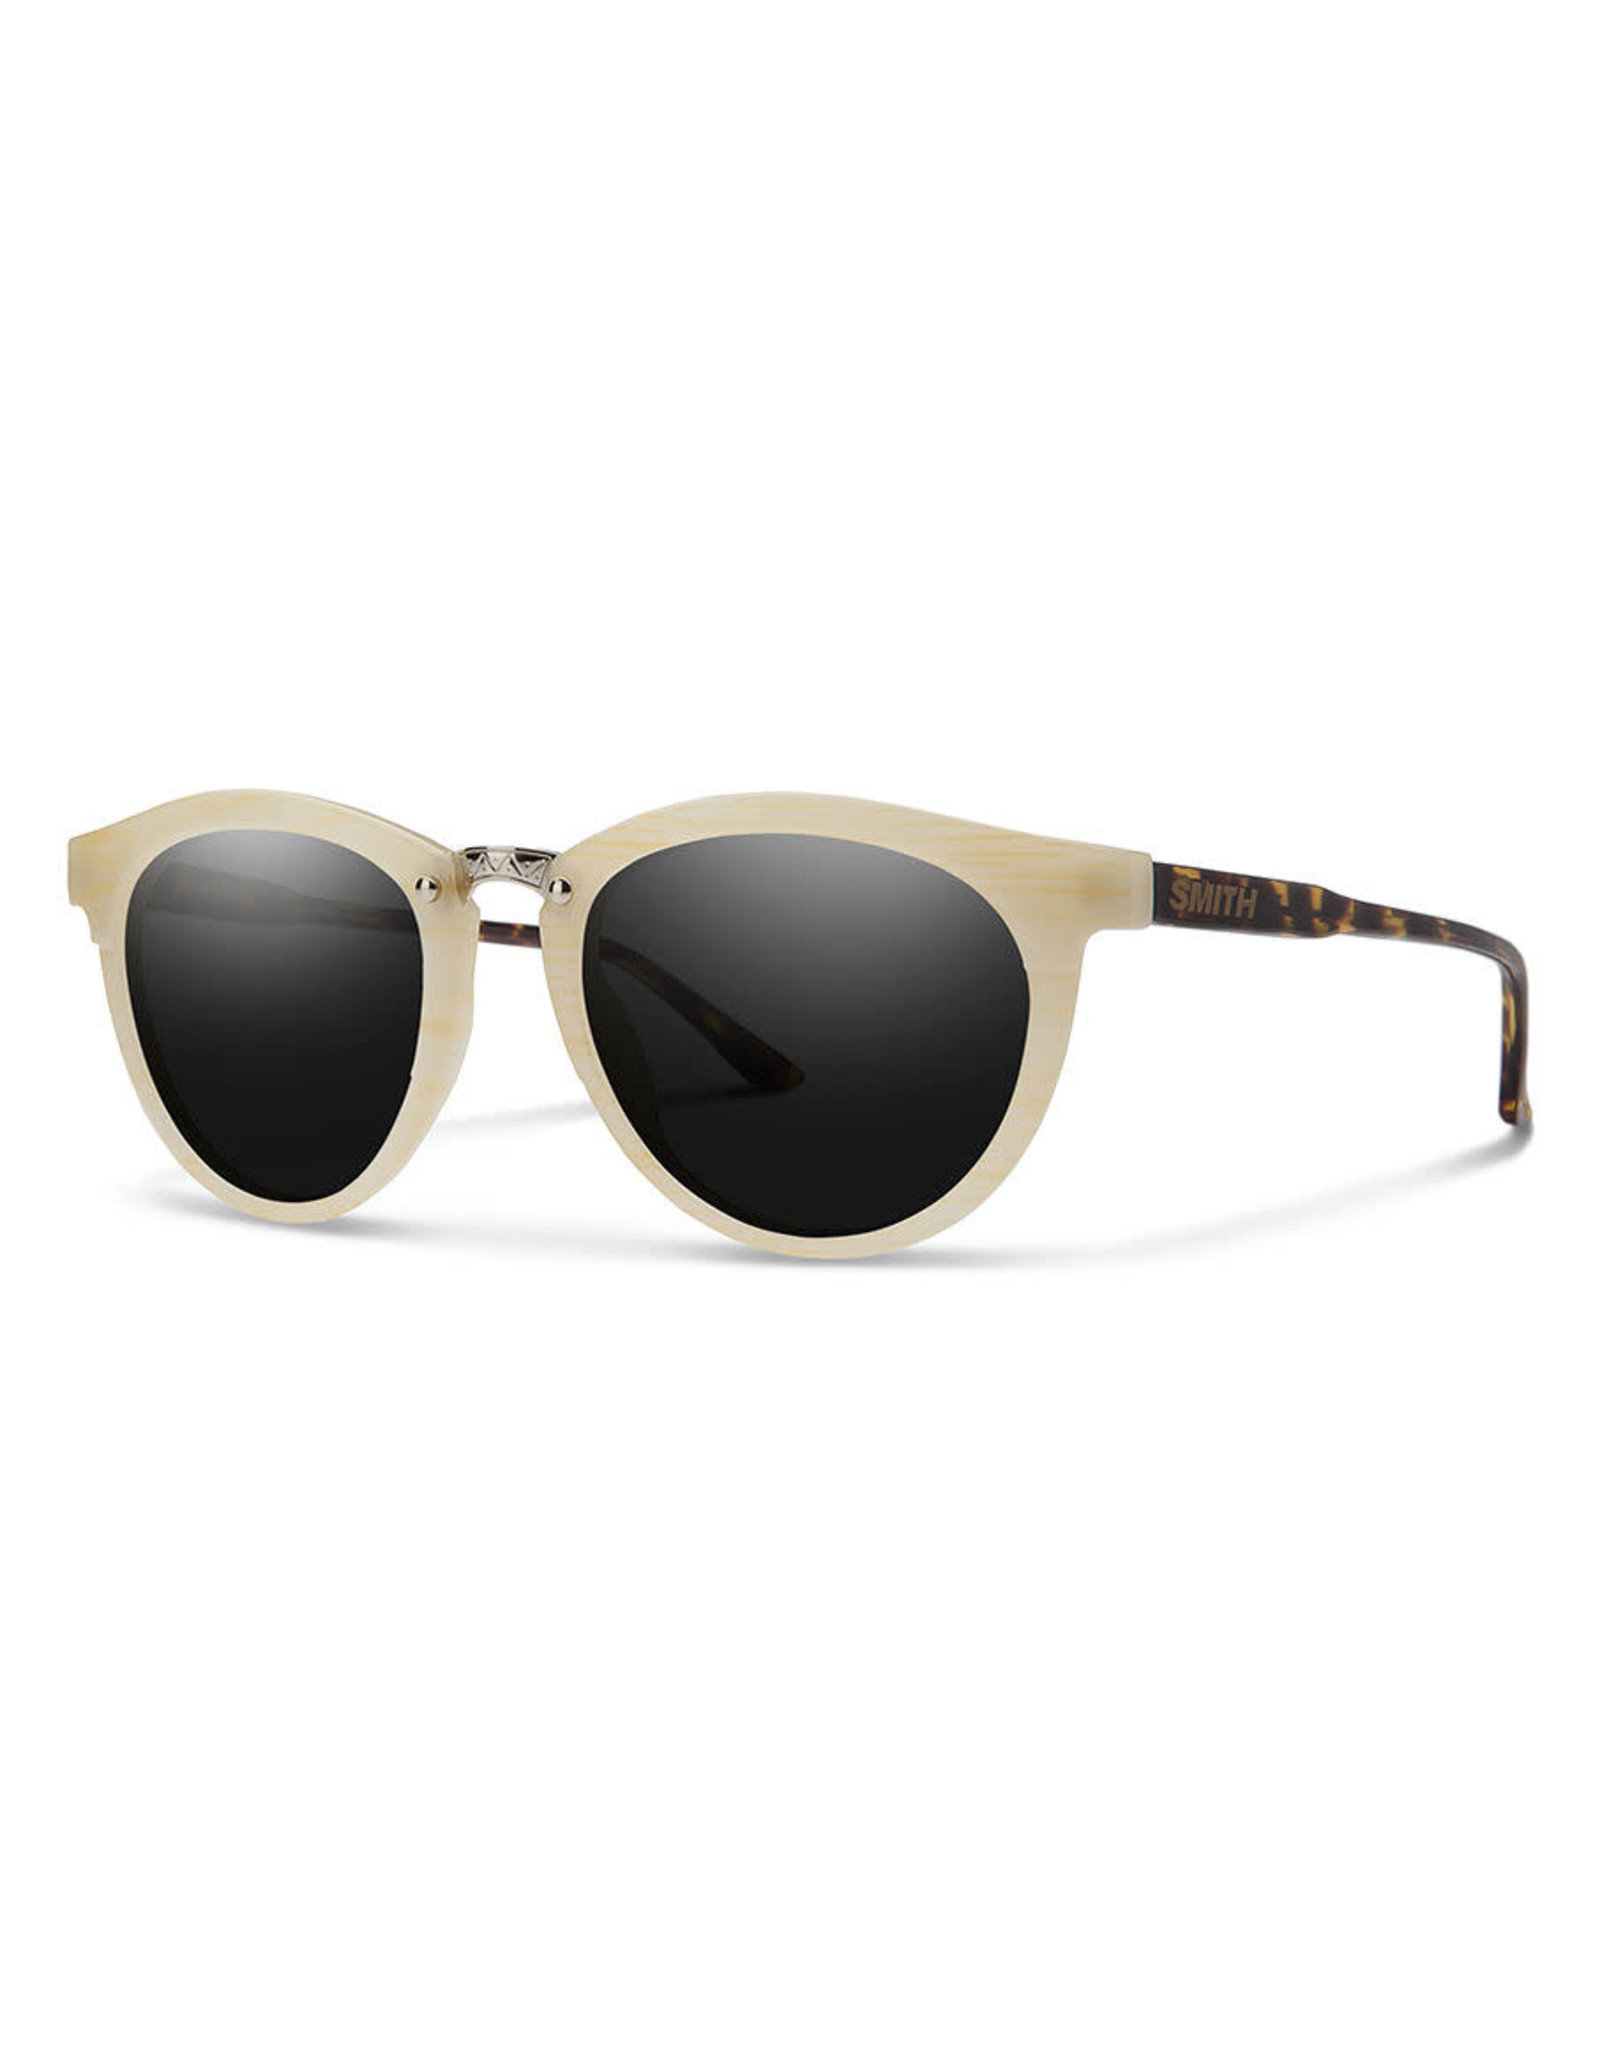 Smith Optics Smith Questa